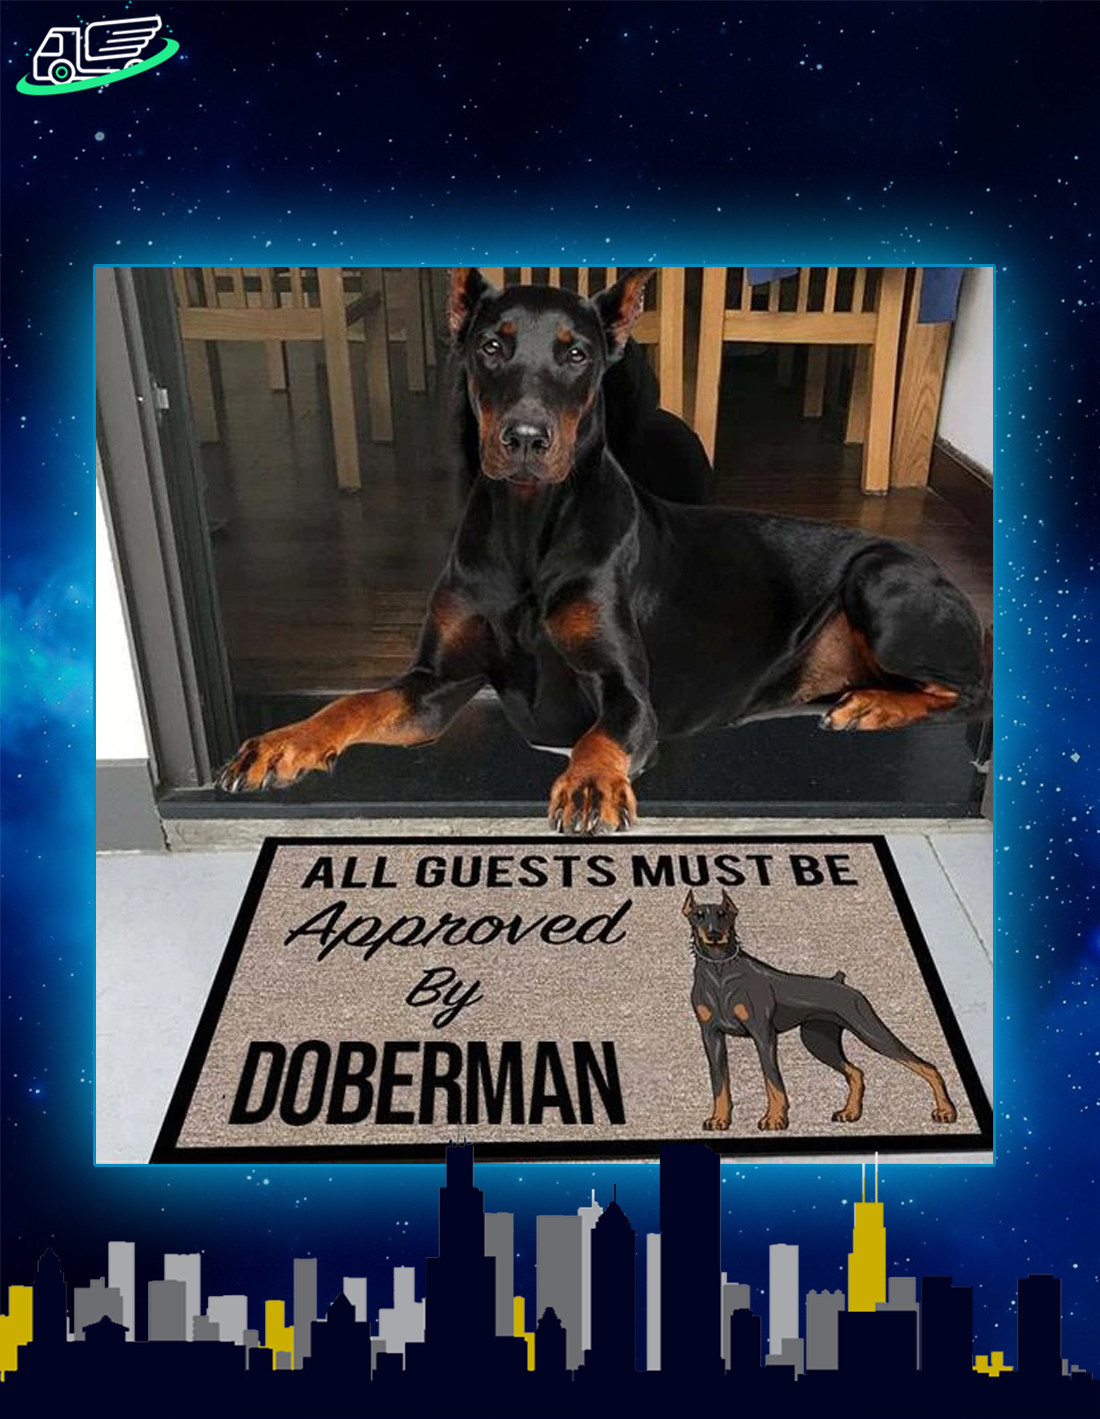 All guests must be approved by doberman doormat